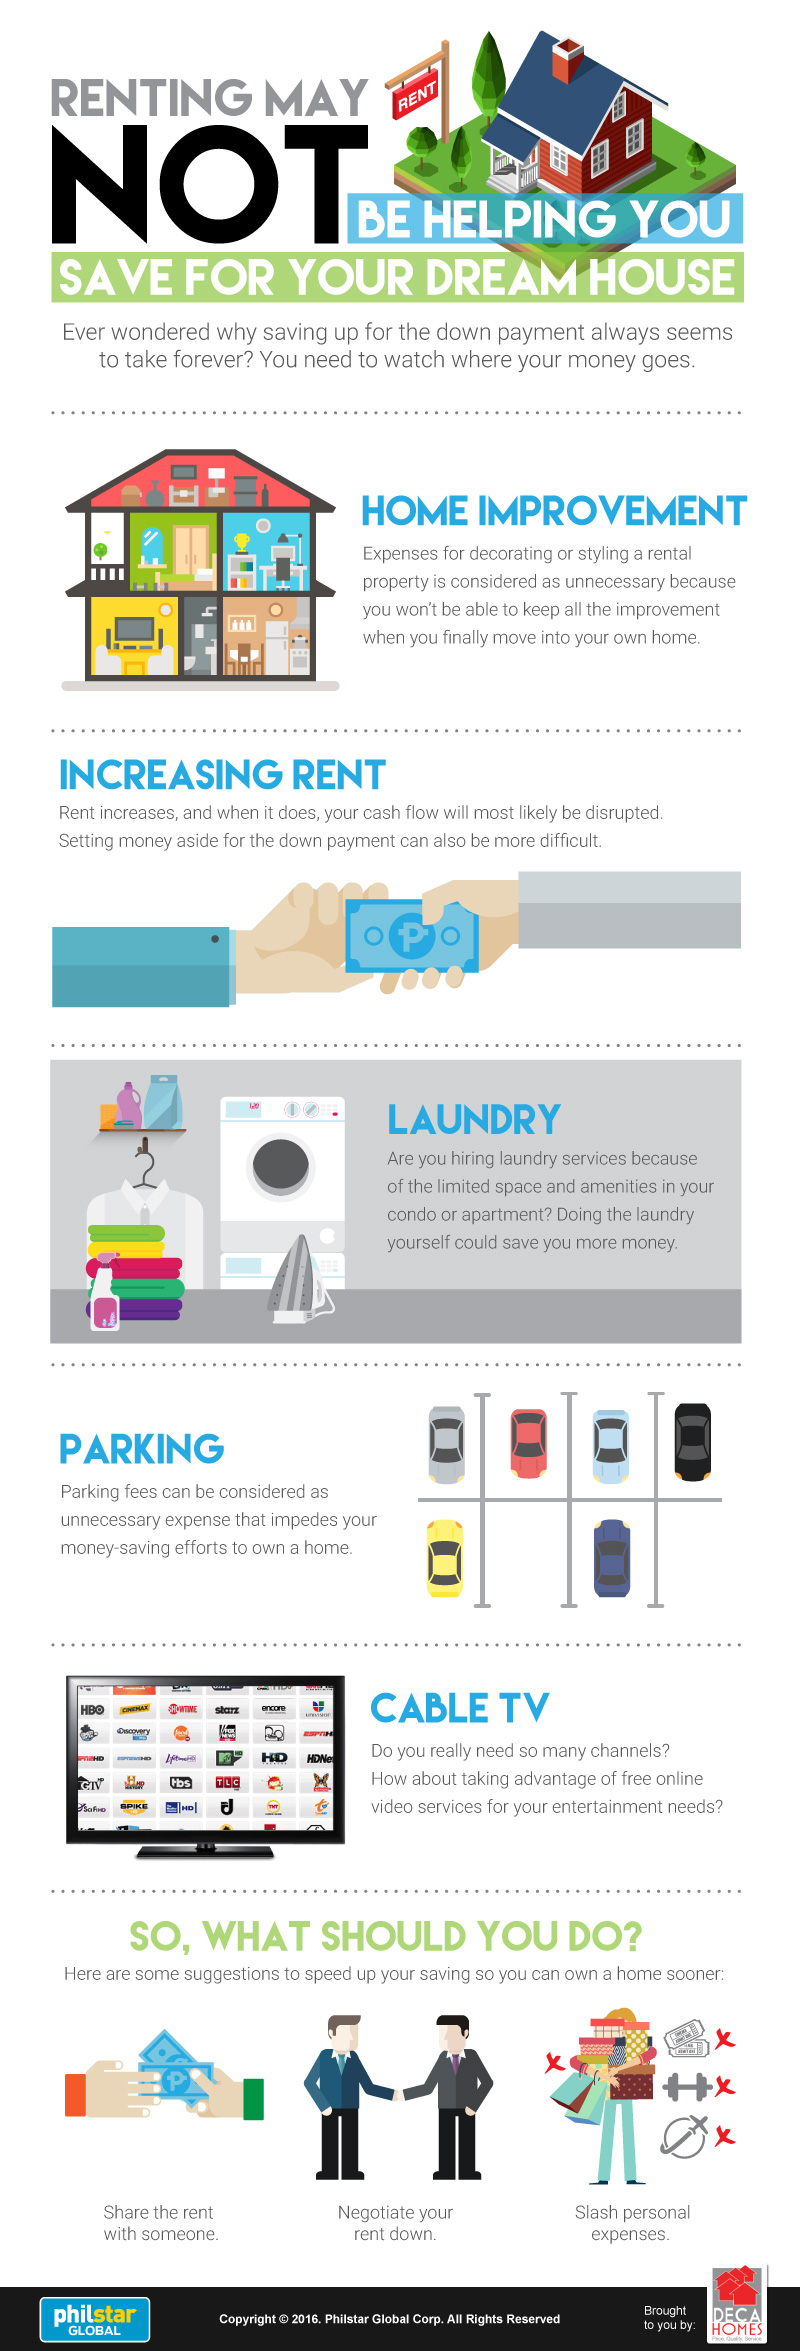 renting may not be helping you infographic